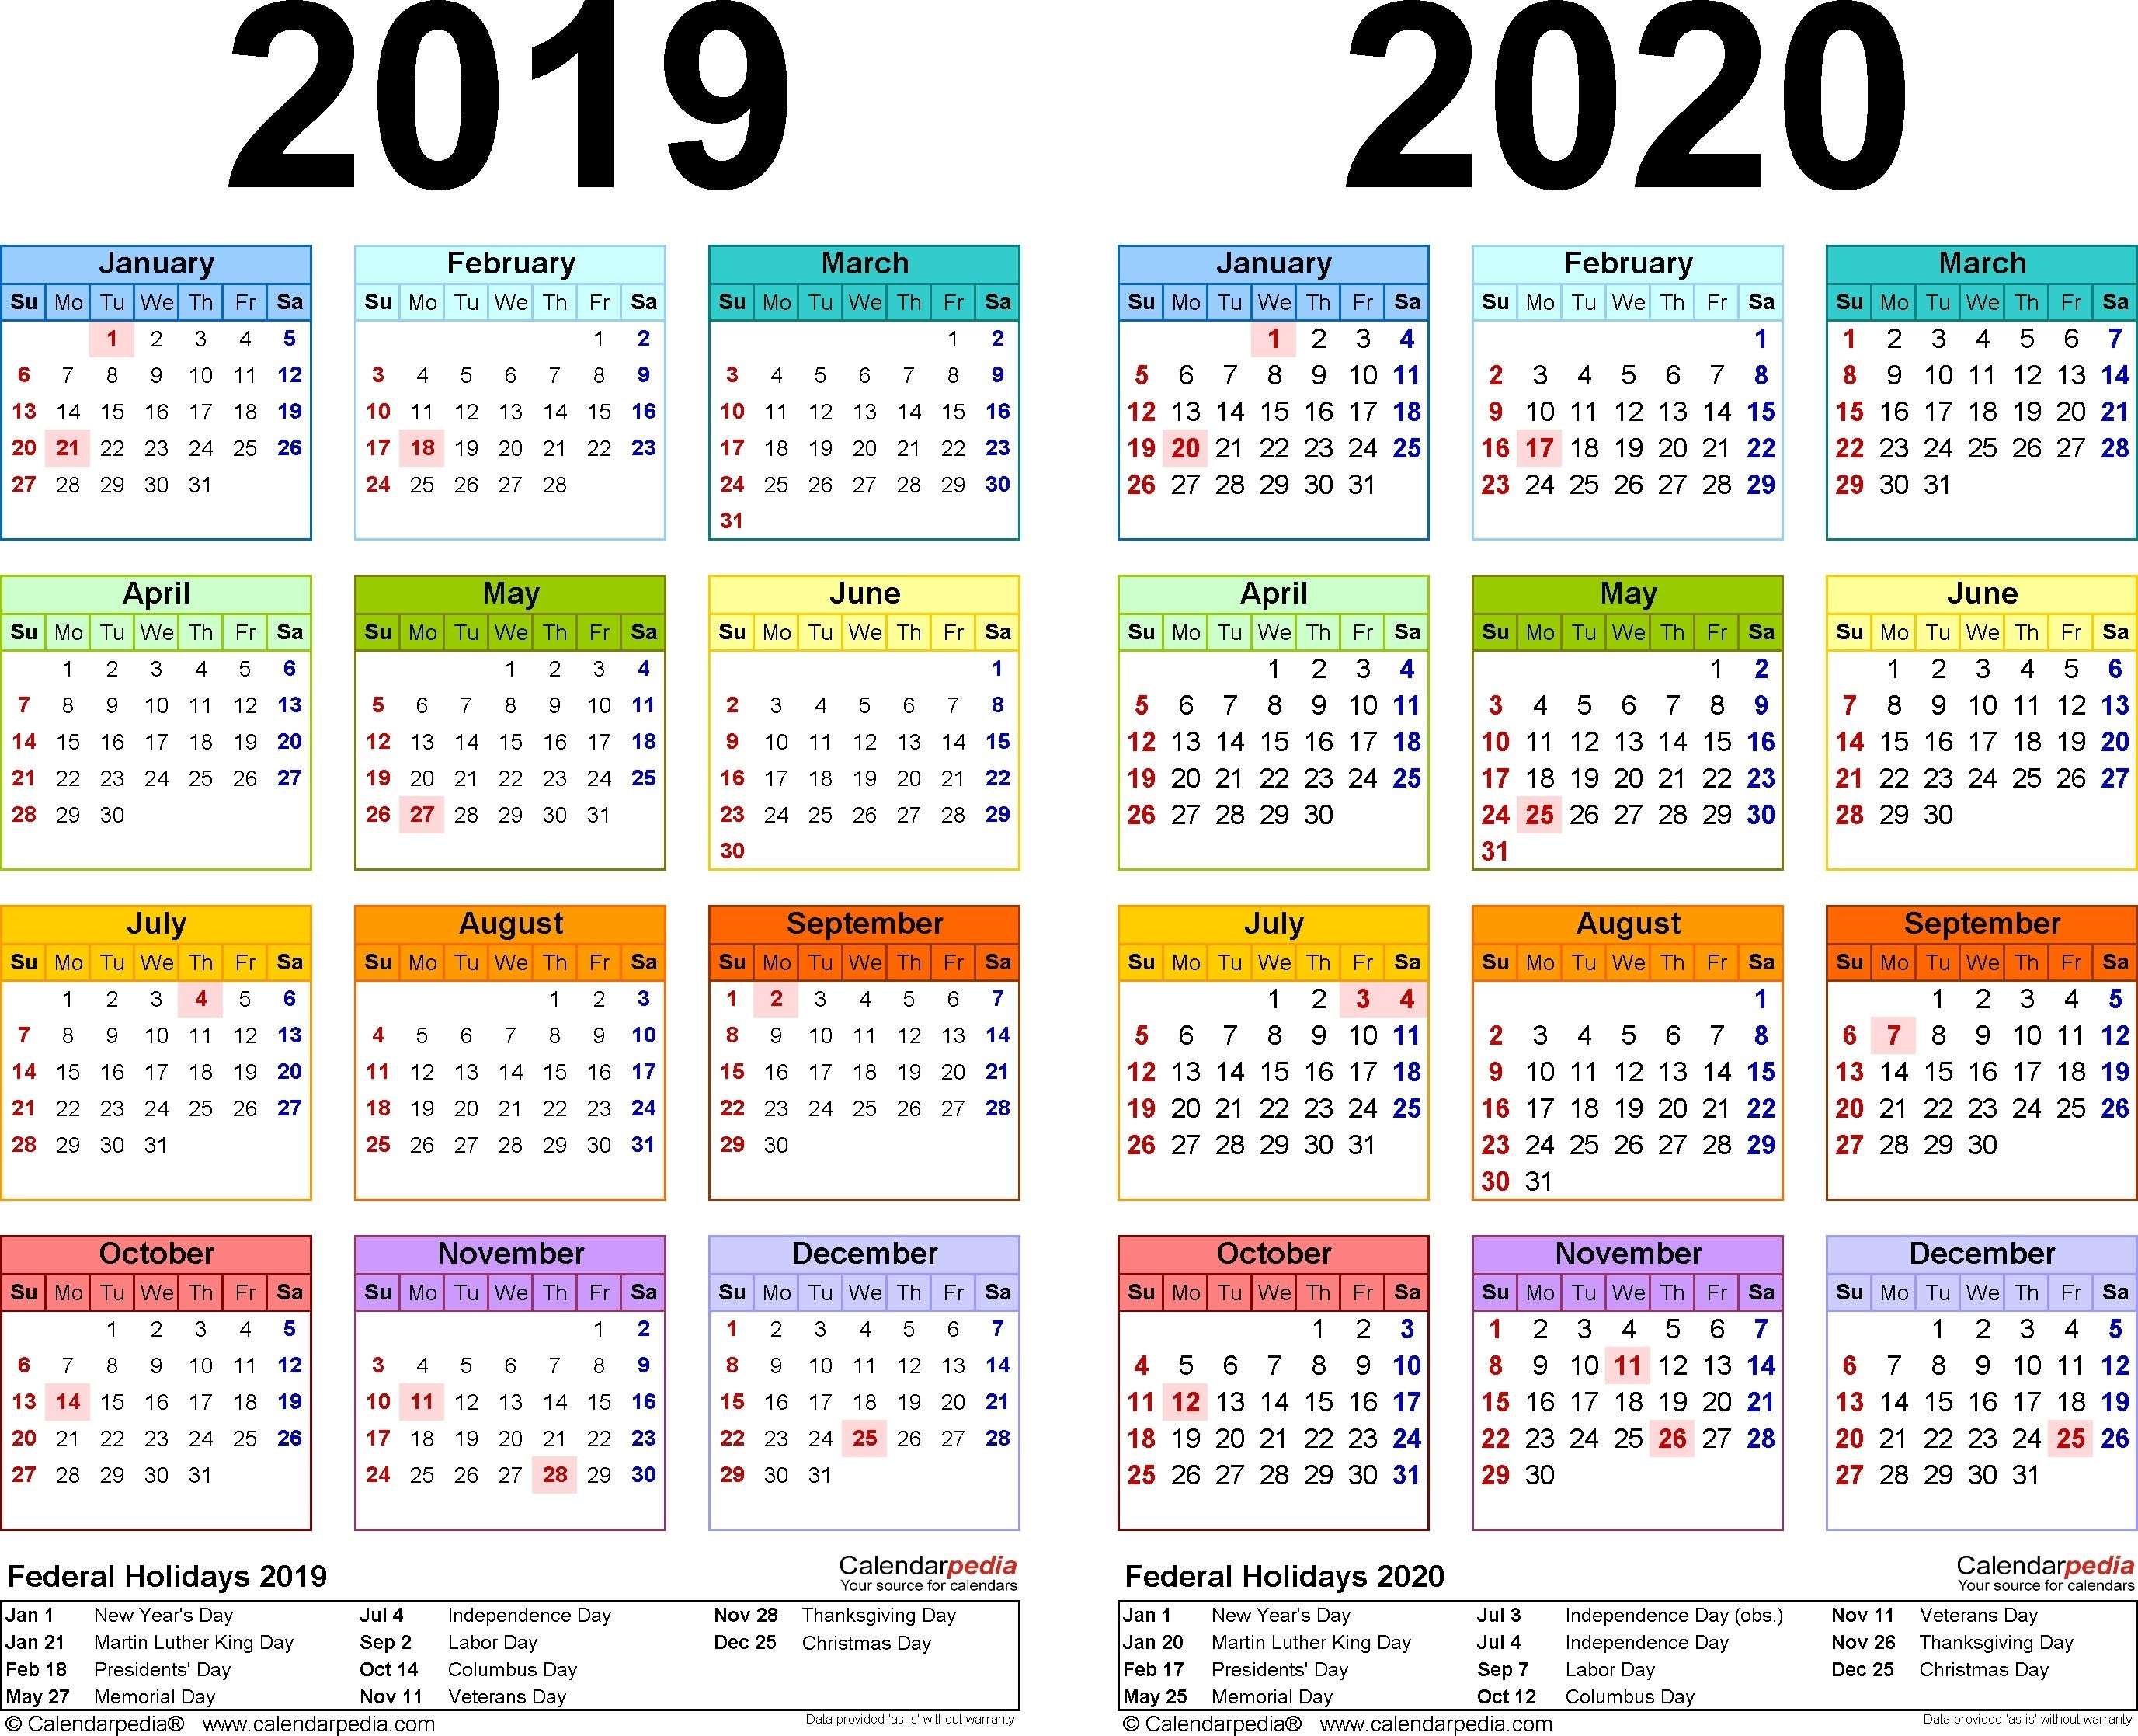 2019-2020 Calendar - Free Printable Two-Year Pdf Calendars throughout Yearly Calendar In One Page 2019-2020